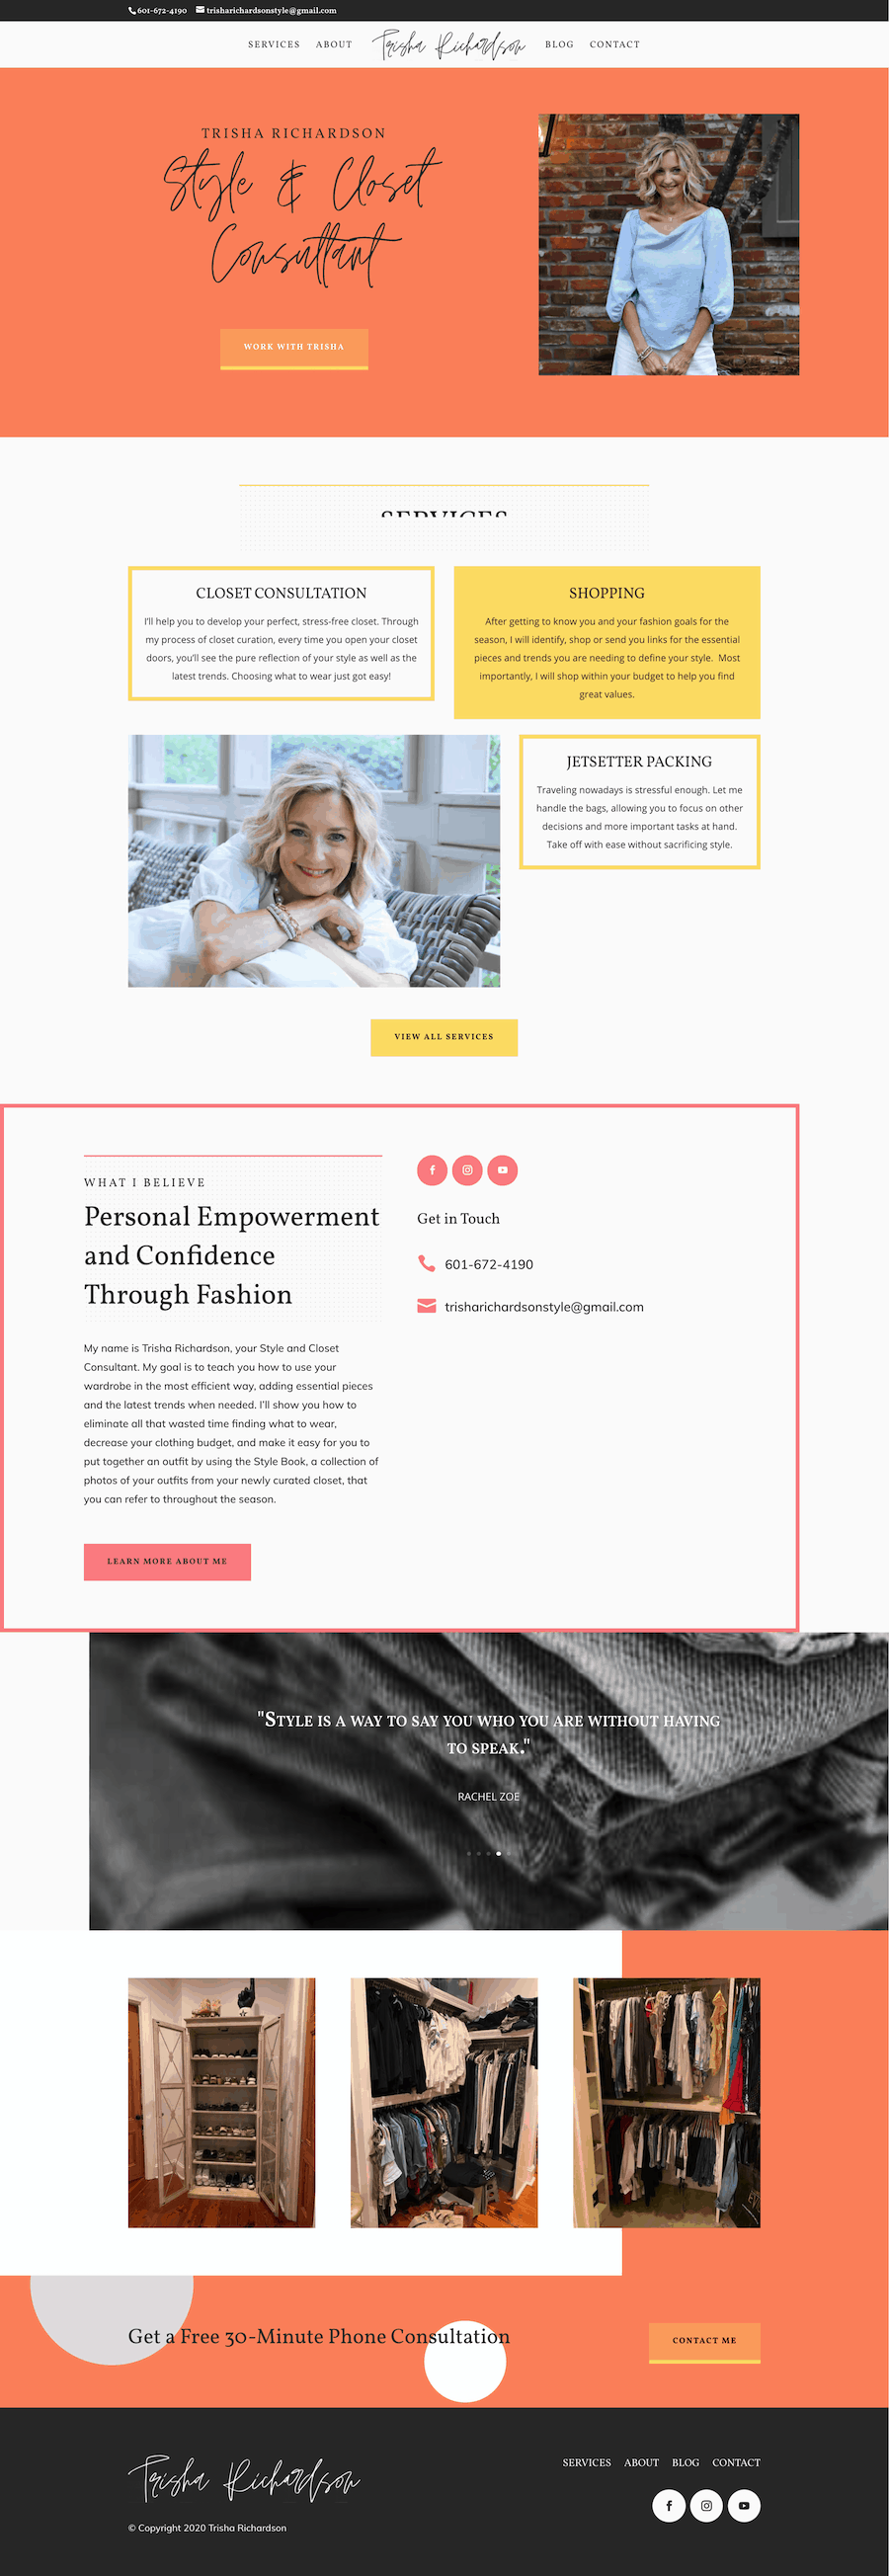 The Homepage of a Personal Stylist Website for Trisha Richardson Style